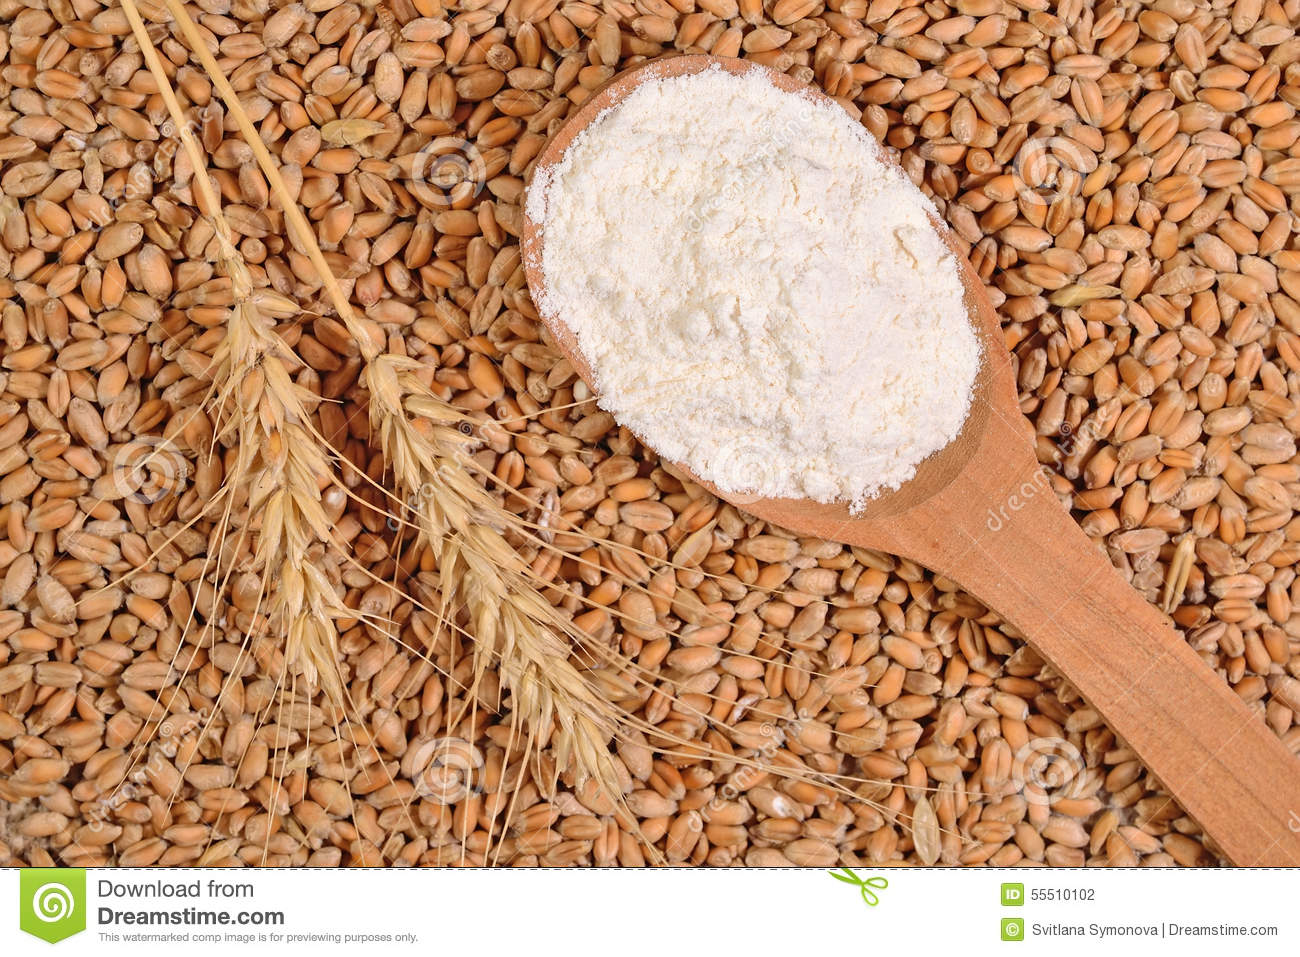 white flour in a wooden spoon and ears of wheat on a wheat grain stock photo image 55510102. Black Bedroom Furniture Sets. Home Design Ideas